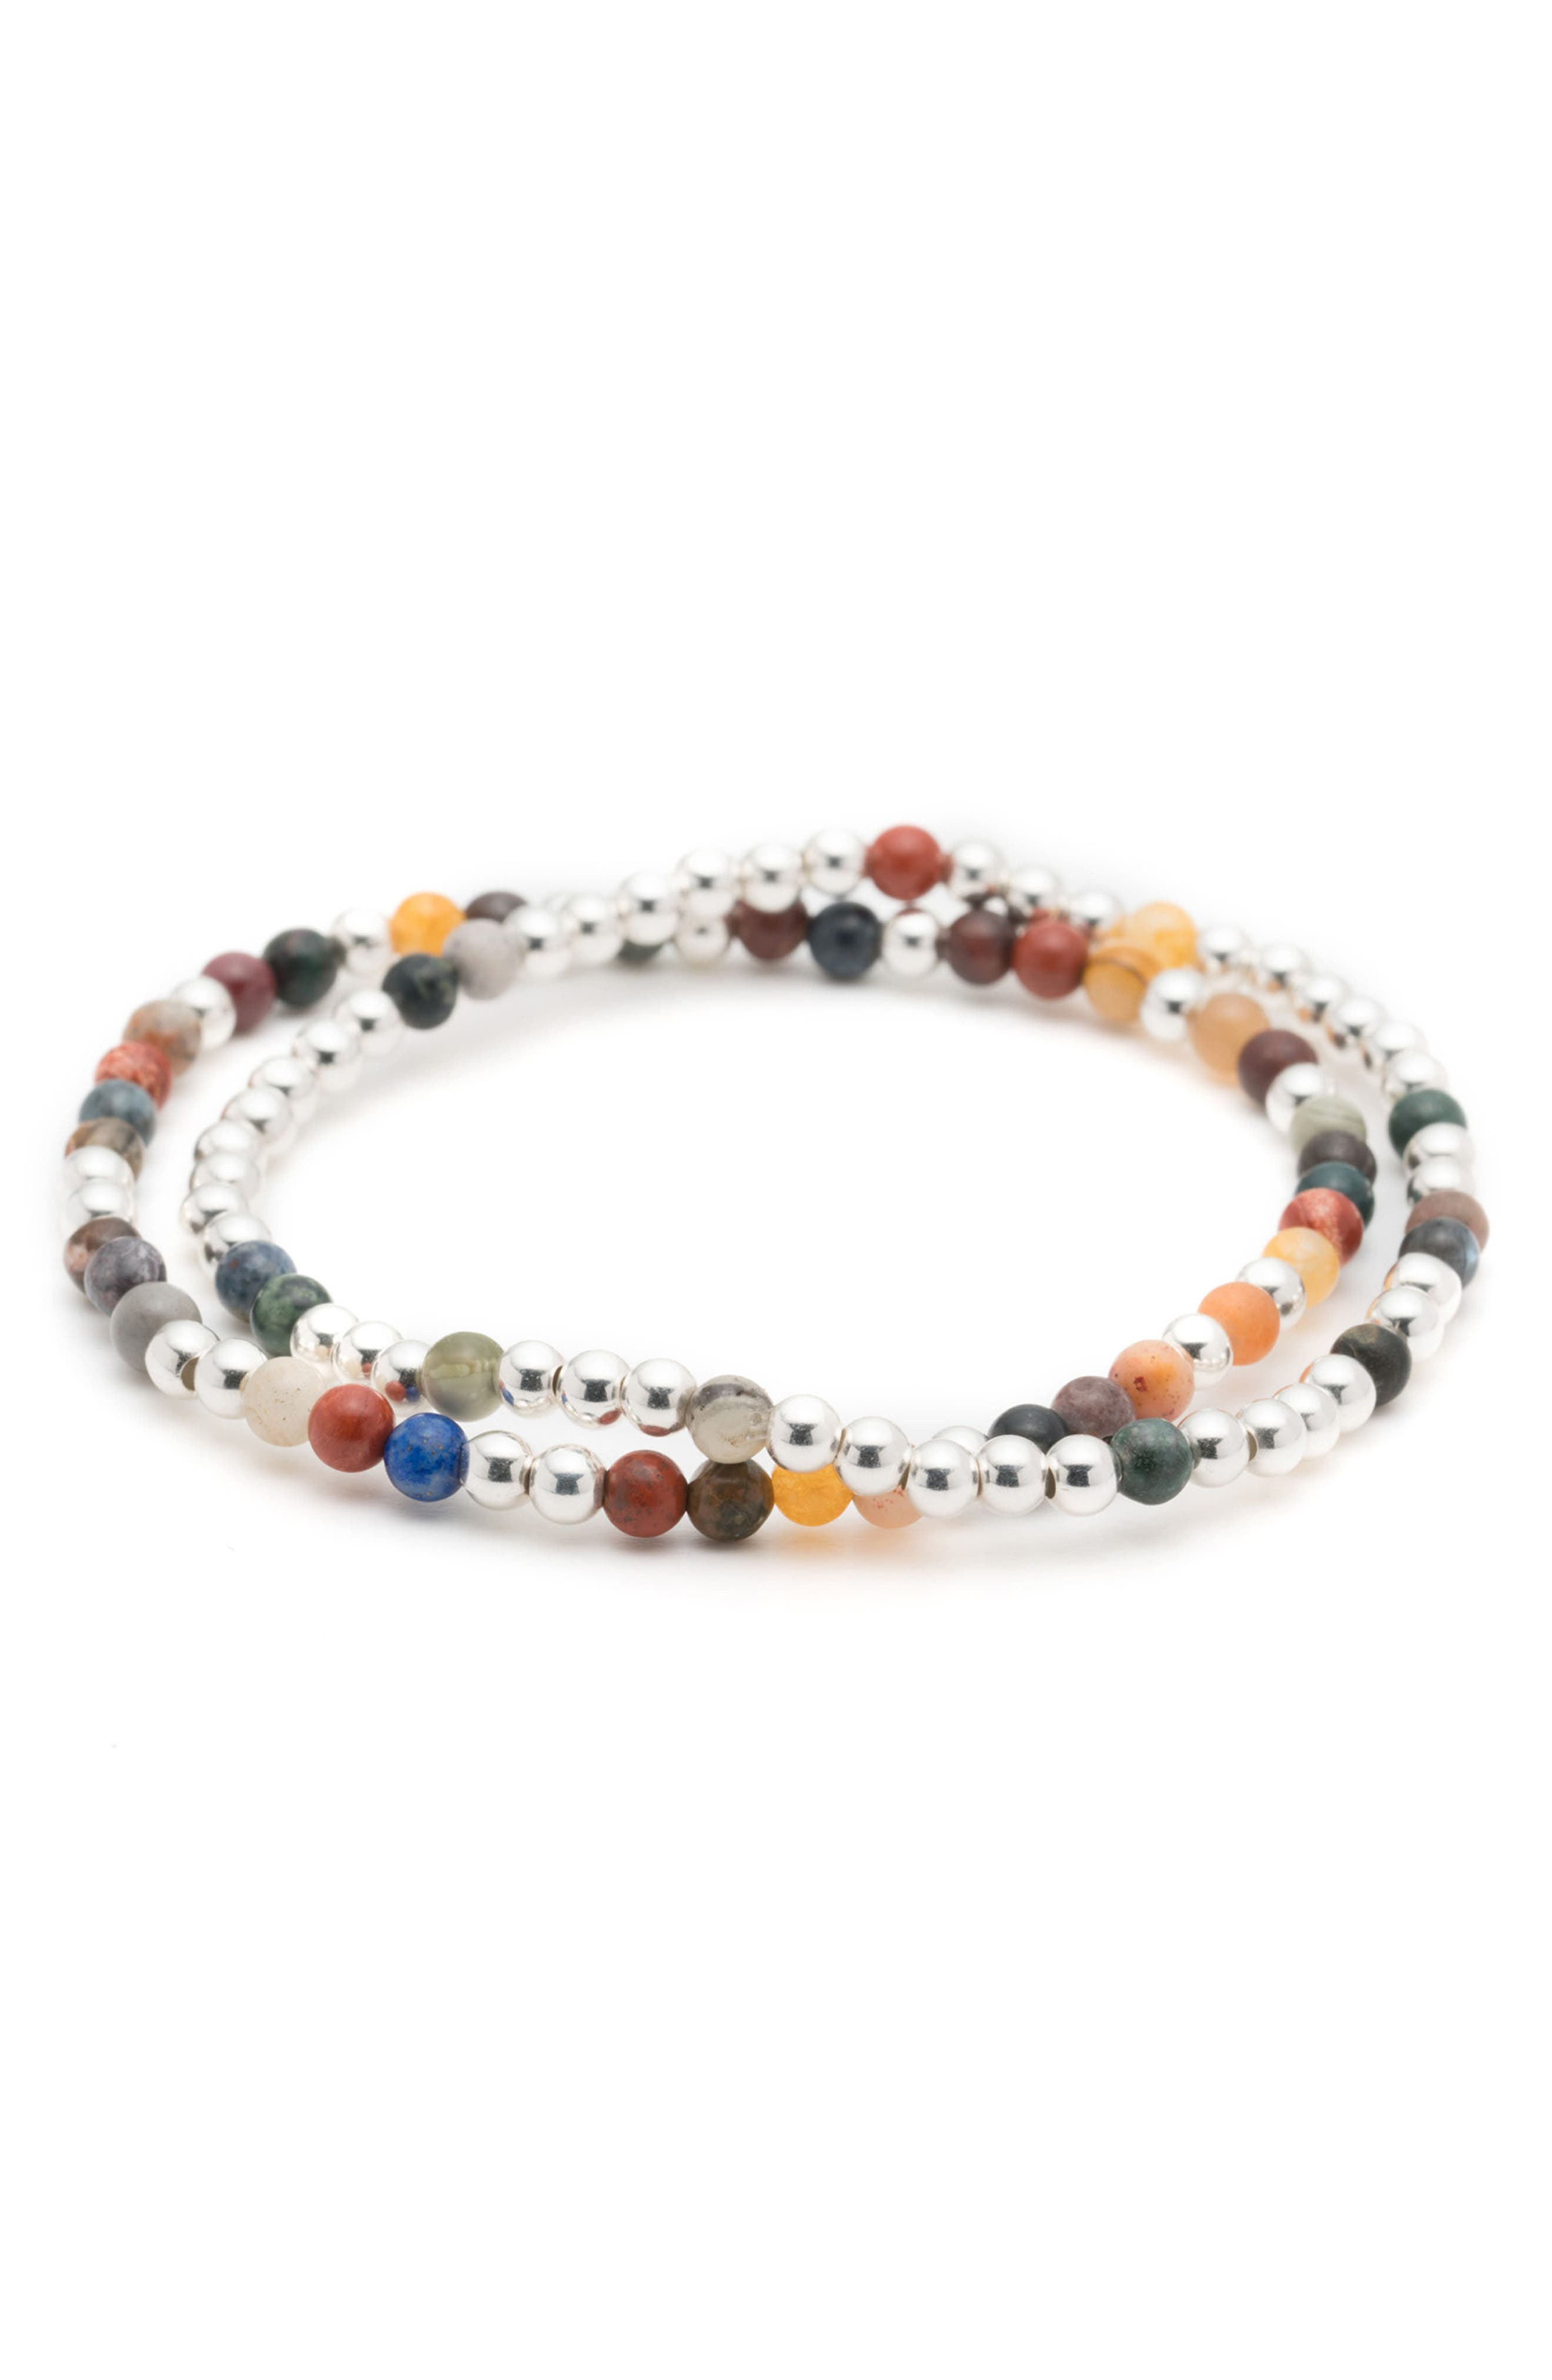 Essaouira 2-Pack Bracelets,                         Main,                         color, Silver/ Multi